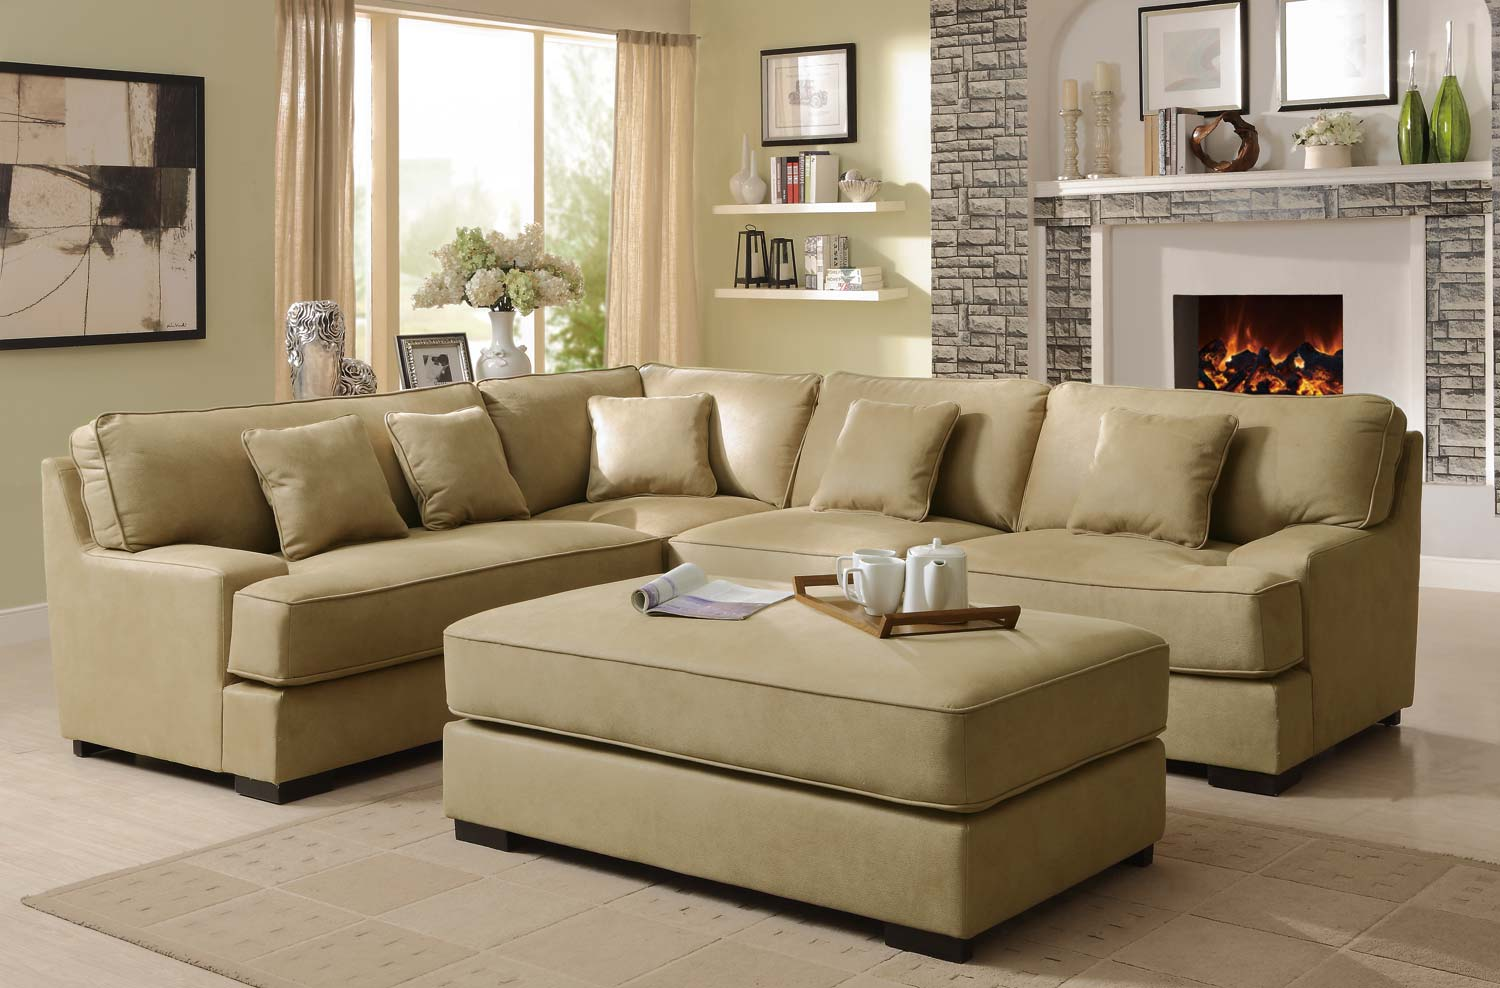 Beau Homelegance Minnis Sectional Sofa Set   Beige